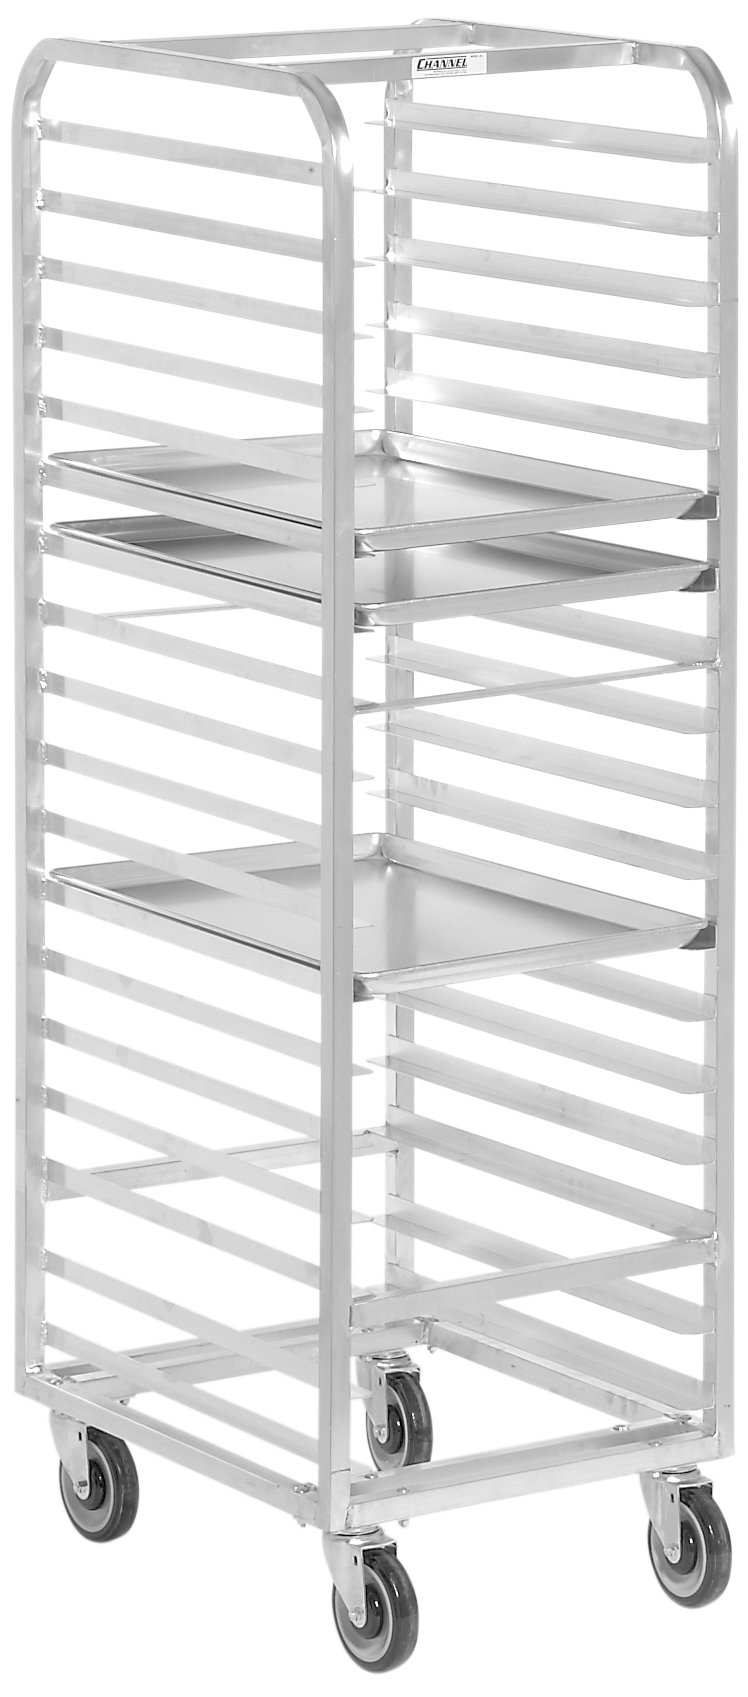 Channel Manufacturing 403A-OR Oven Rack by Channel Manufacturing (Image #1)